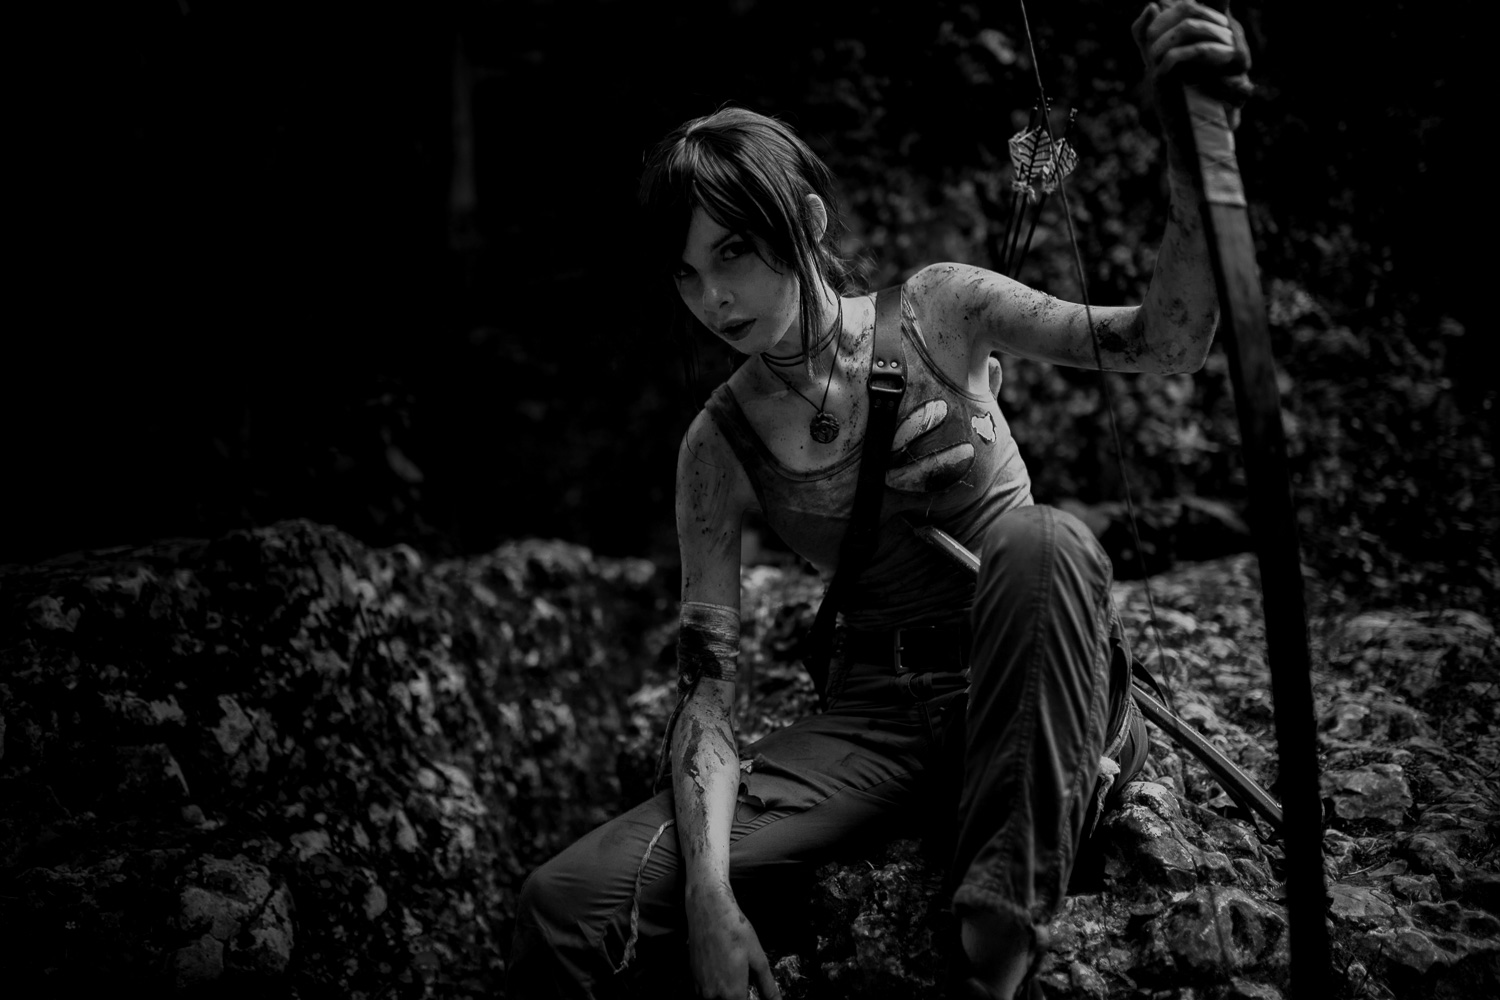 Tomb-Raider-Lara-Croft-Cosplay-16.jpg